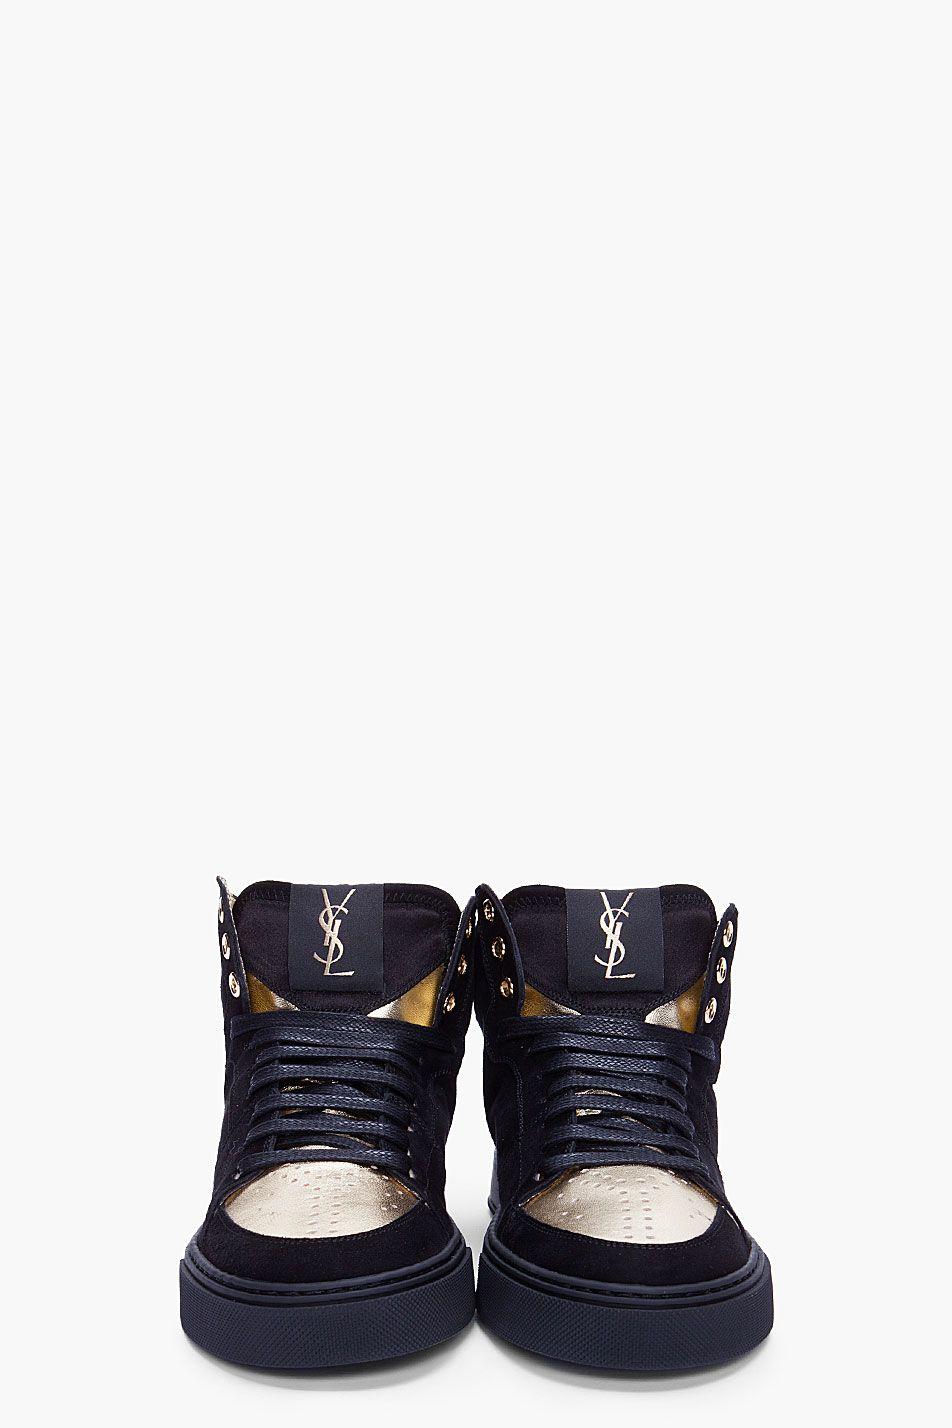 YVES SAINT LAURENT Black Suede Malibu Sneakers